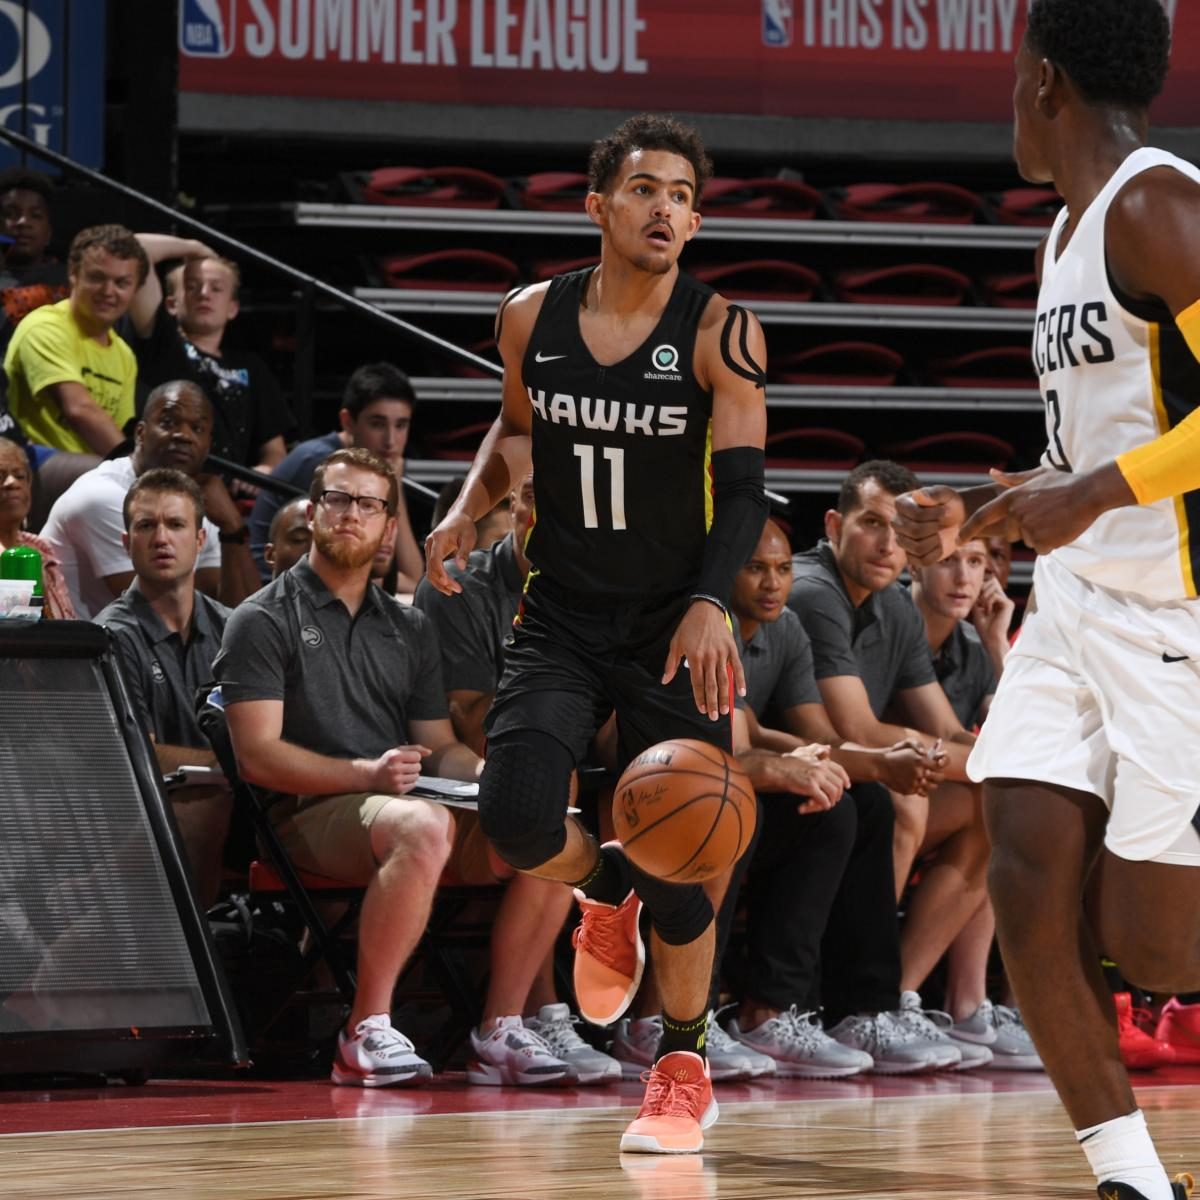 NBA Summer League 2018: Thursday Schedule, Latest Las Vegas Bracket and Stats